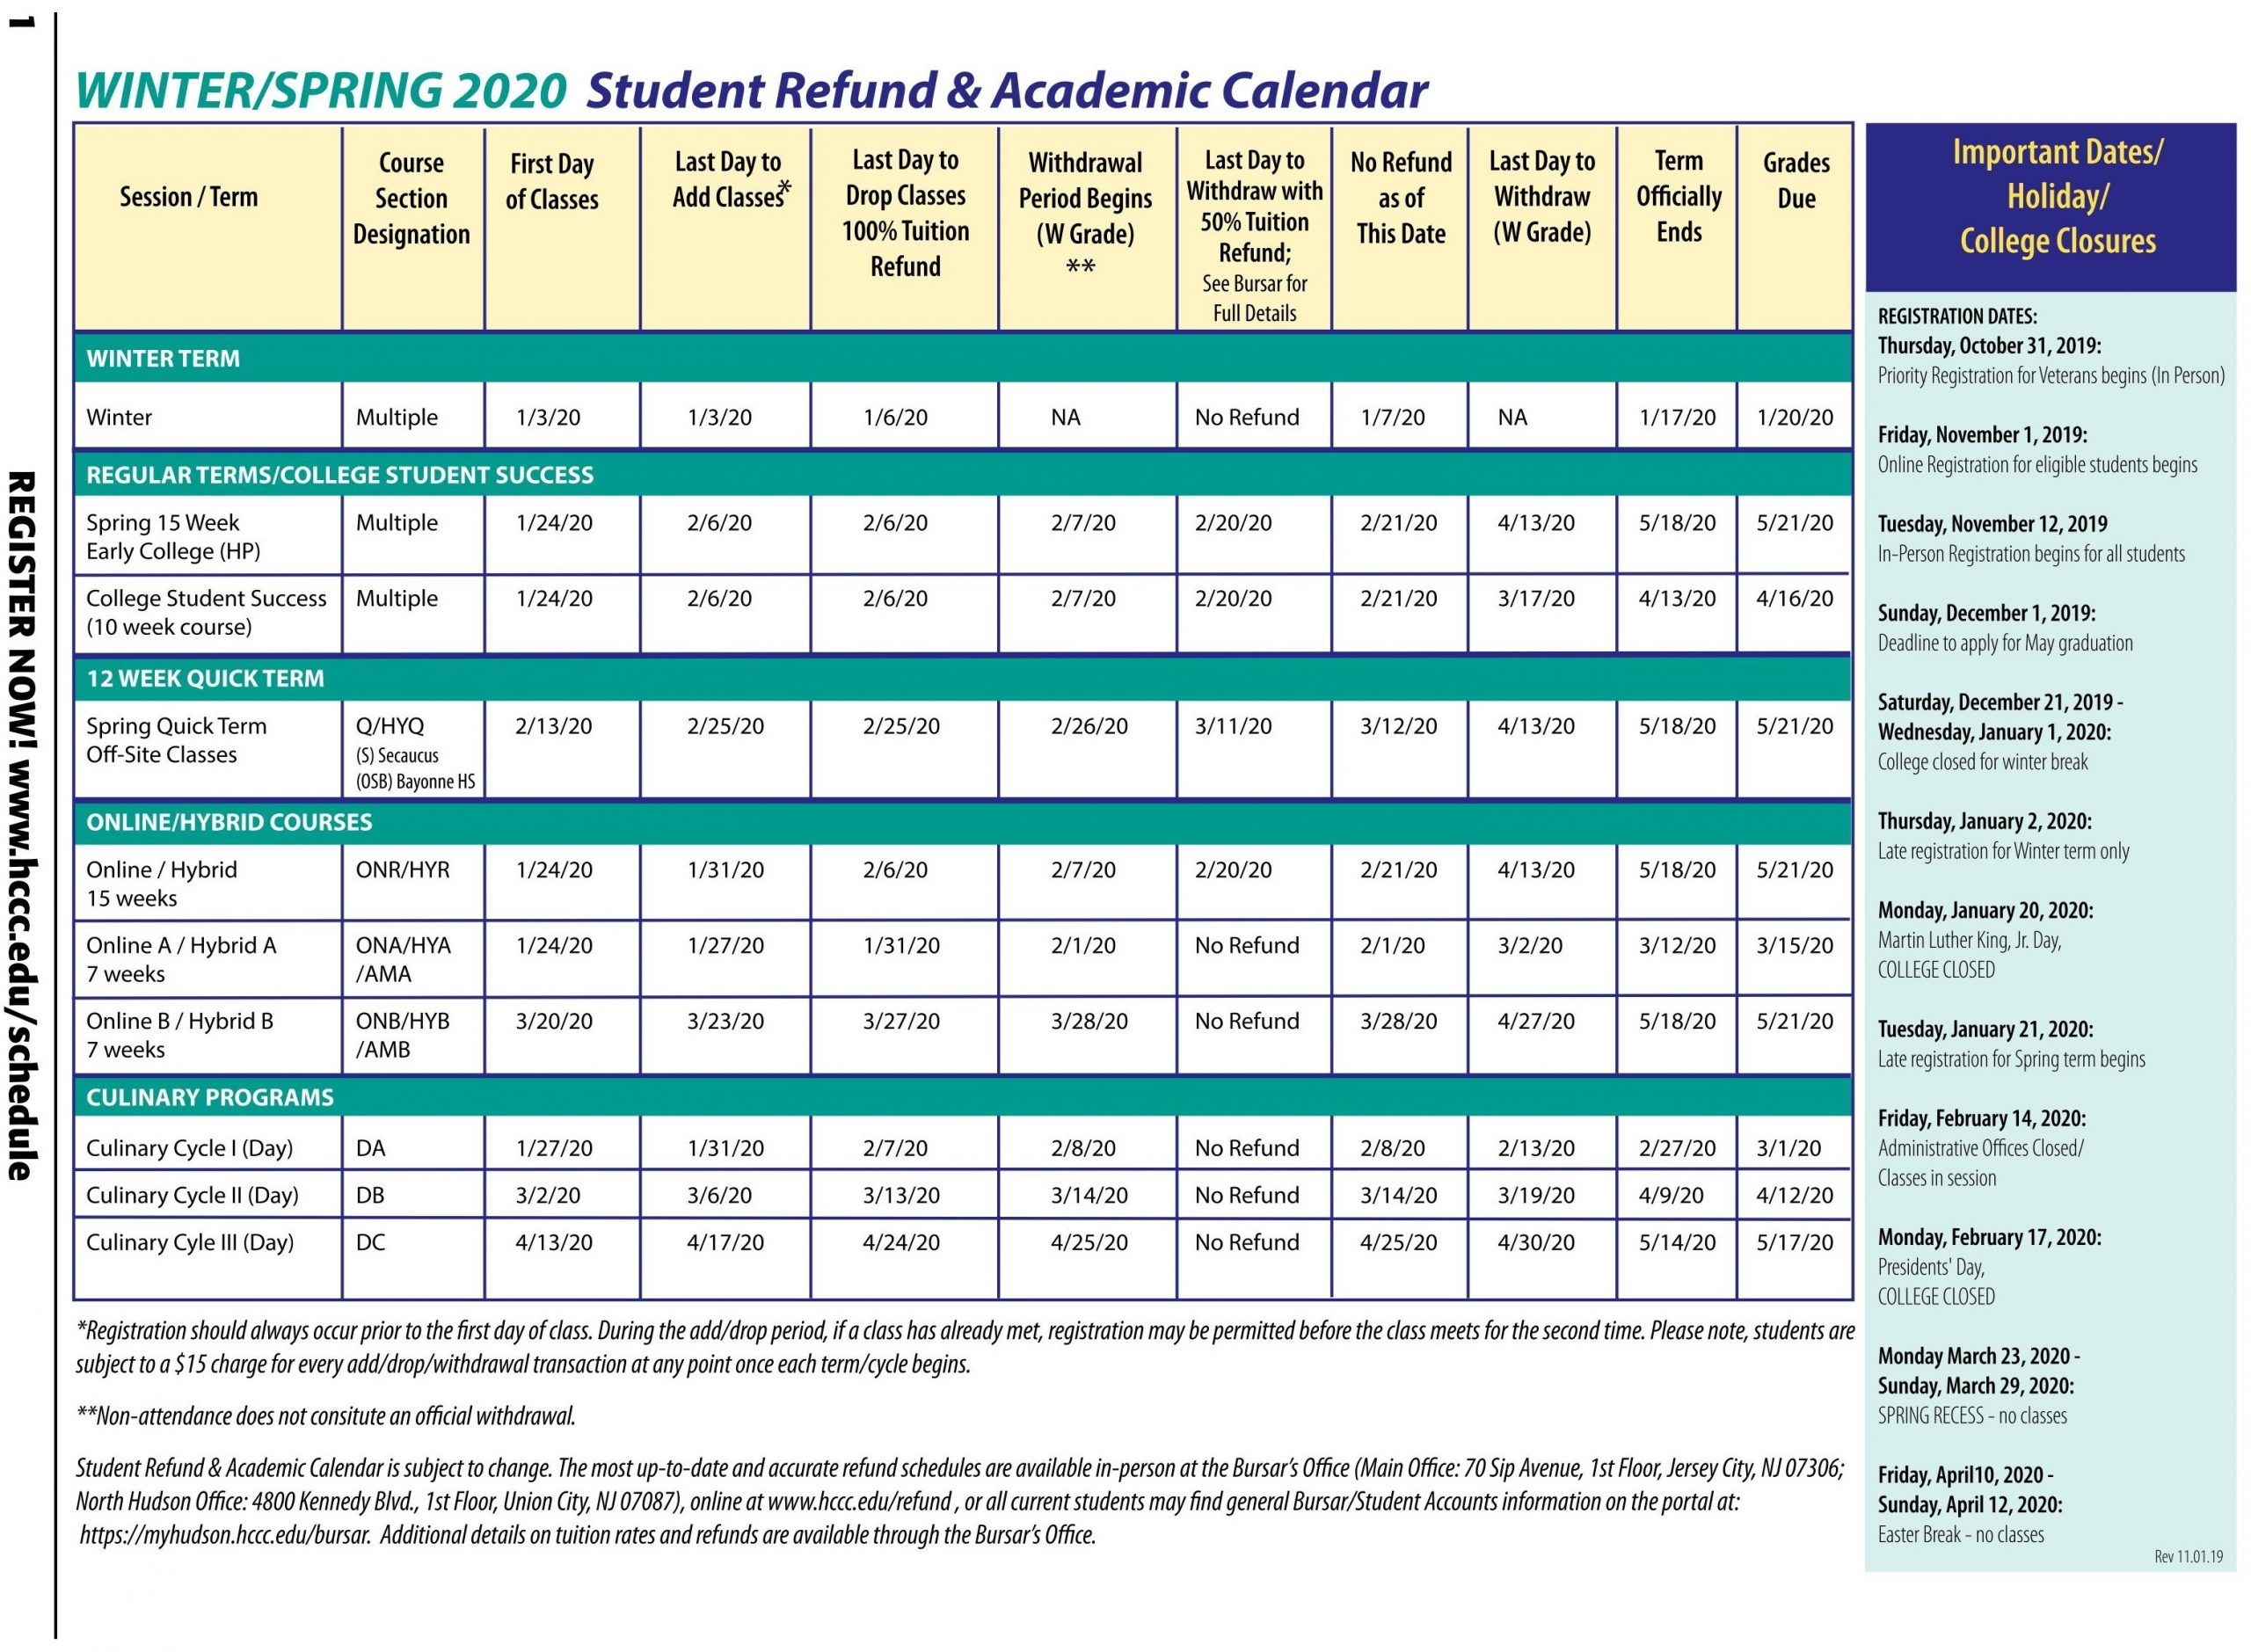 Fall Tv Line Up 2021 2020 Printable | Printable Calendar for Academic Calendar Nassau Community College 2021-2020